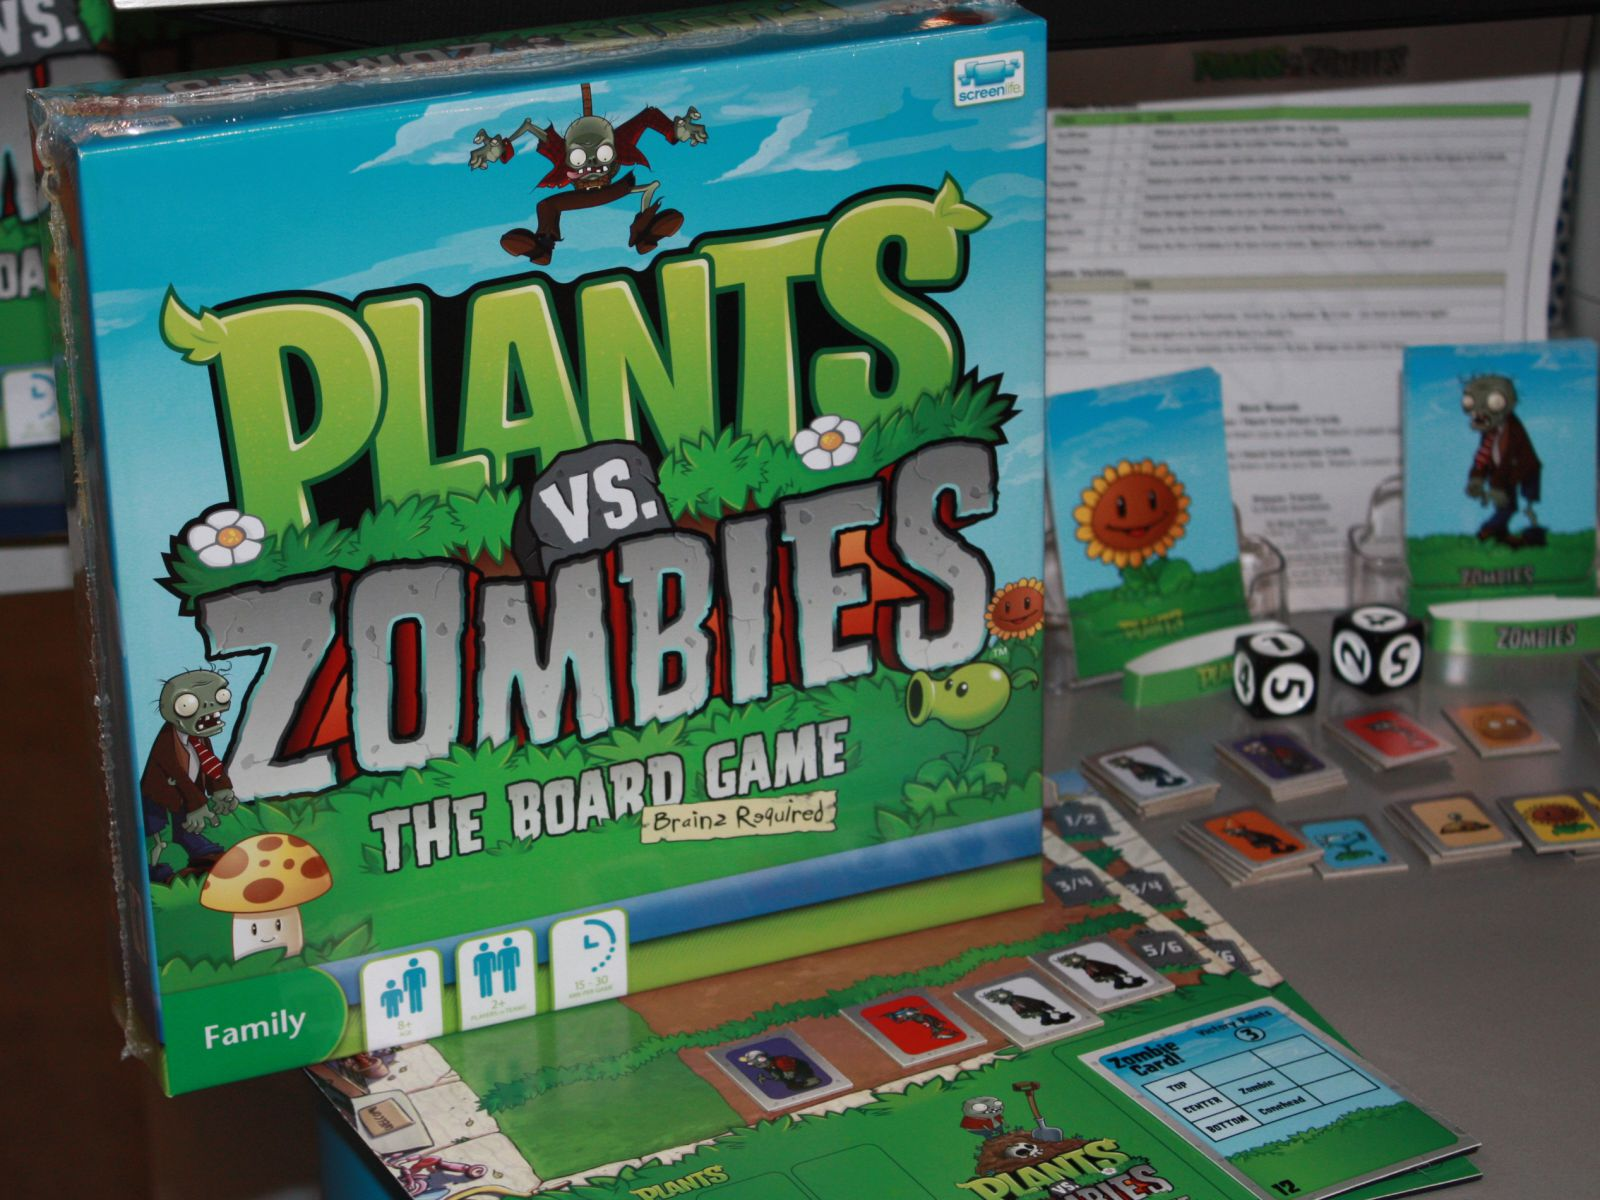 Is There A Board Game Of Plants Vs Zombies